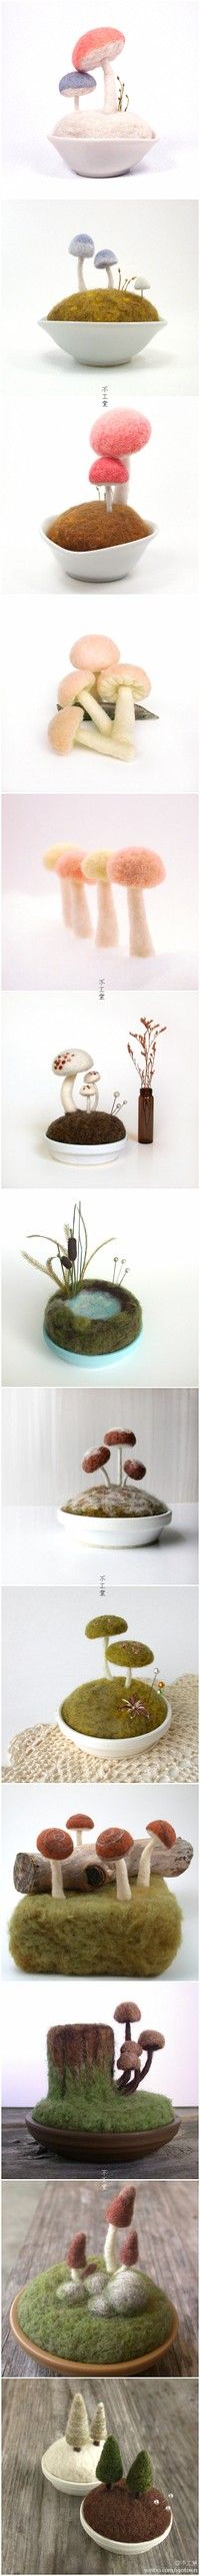 teacup gardens (felt ones with little mushrooms and things)